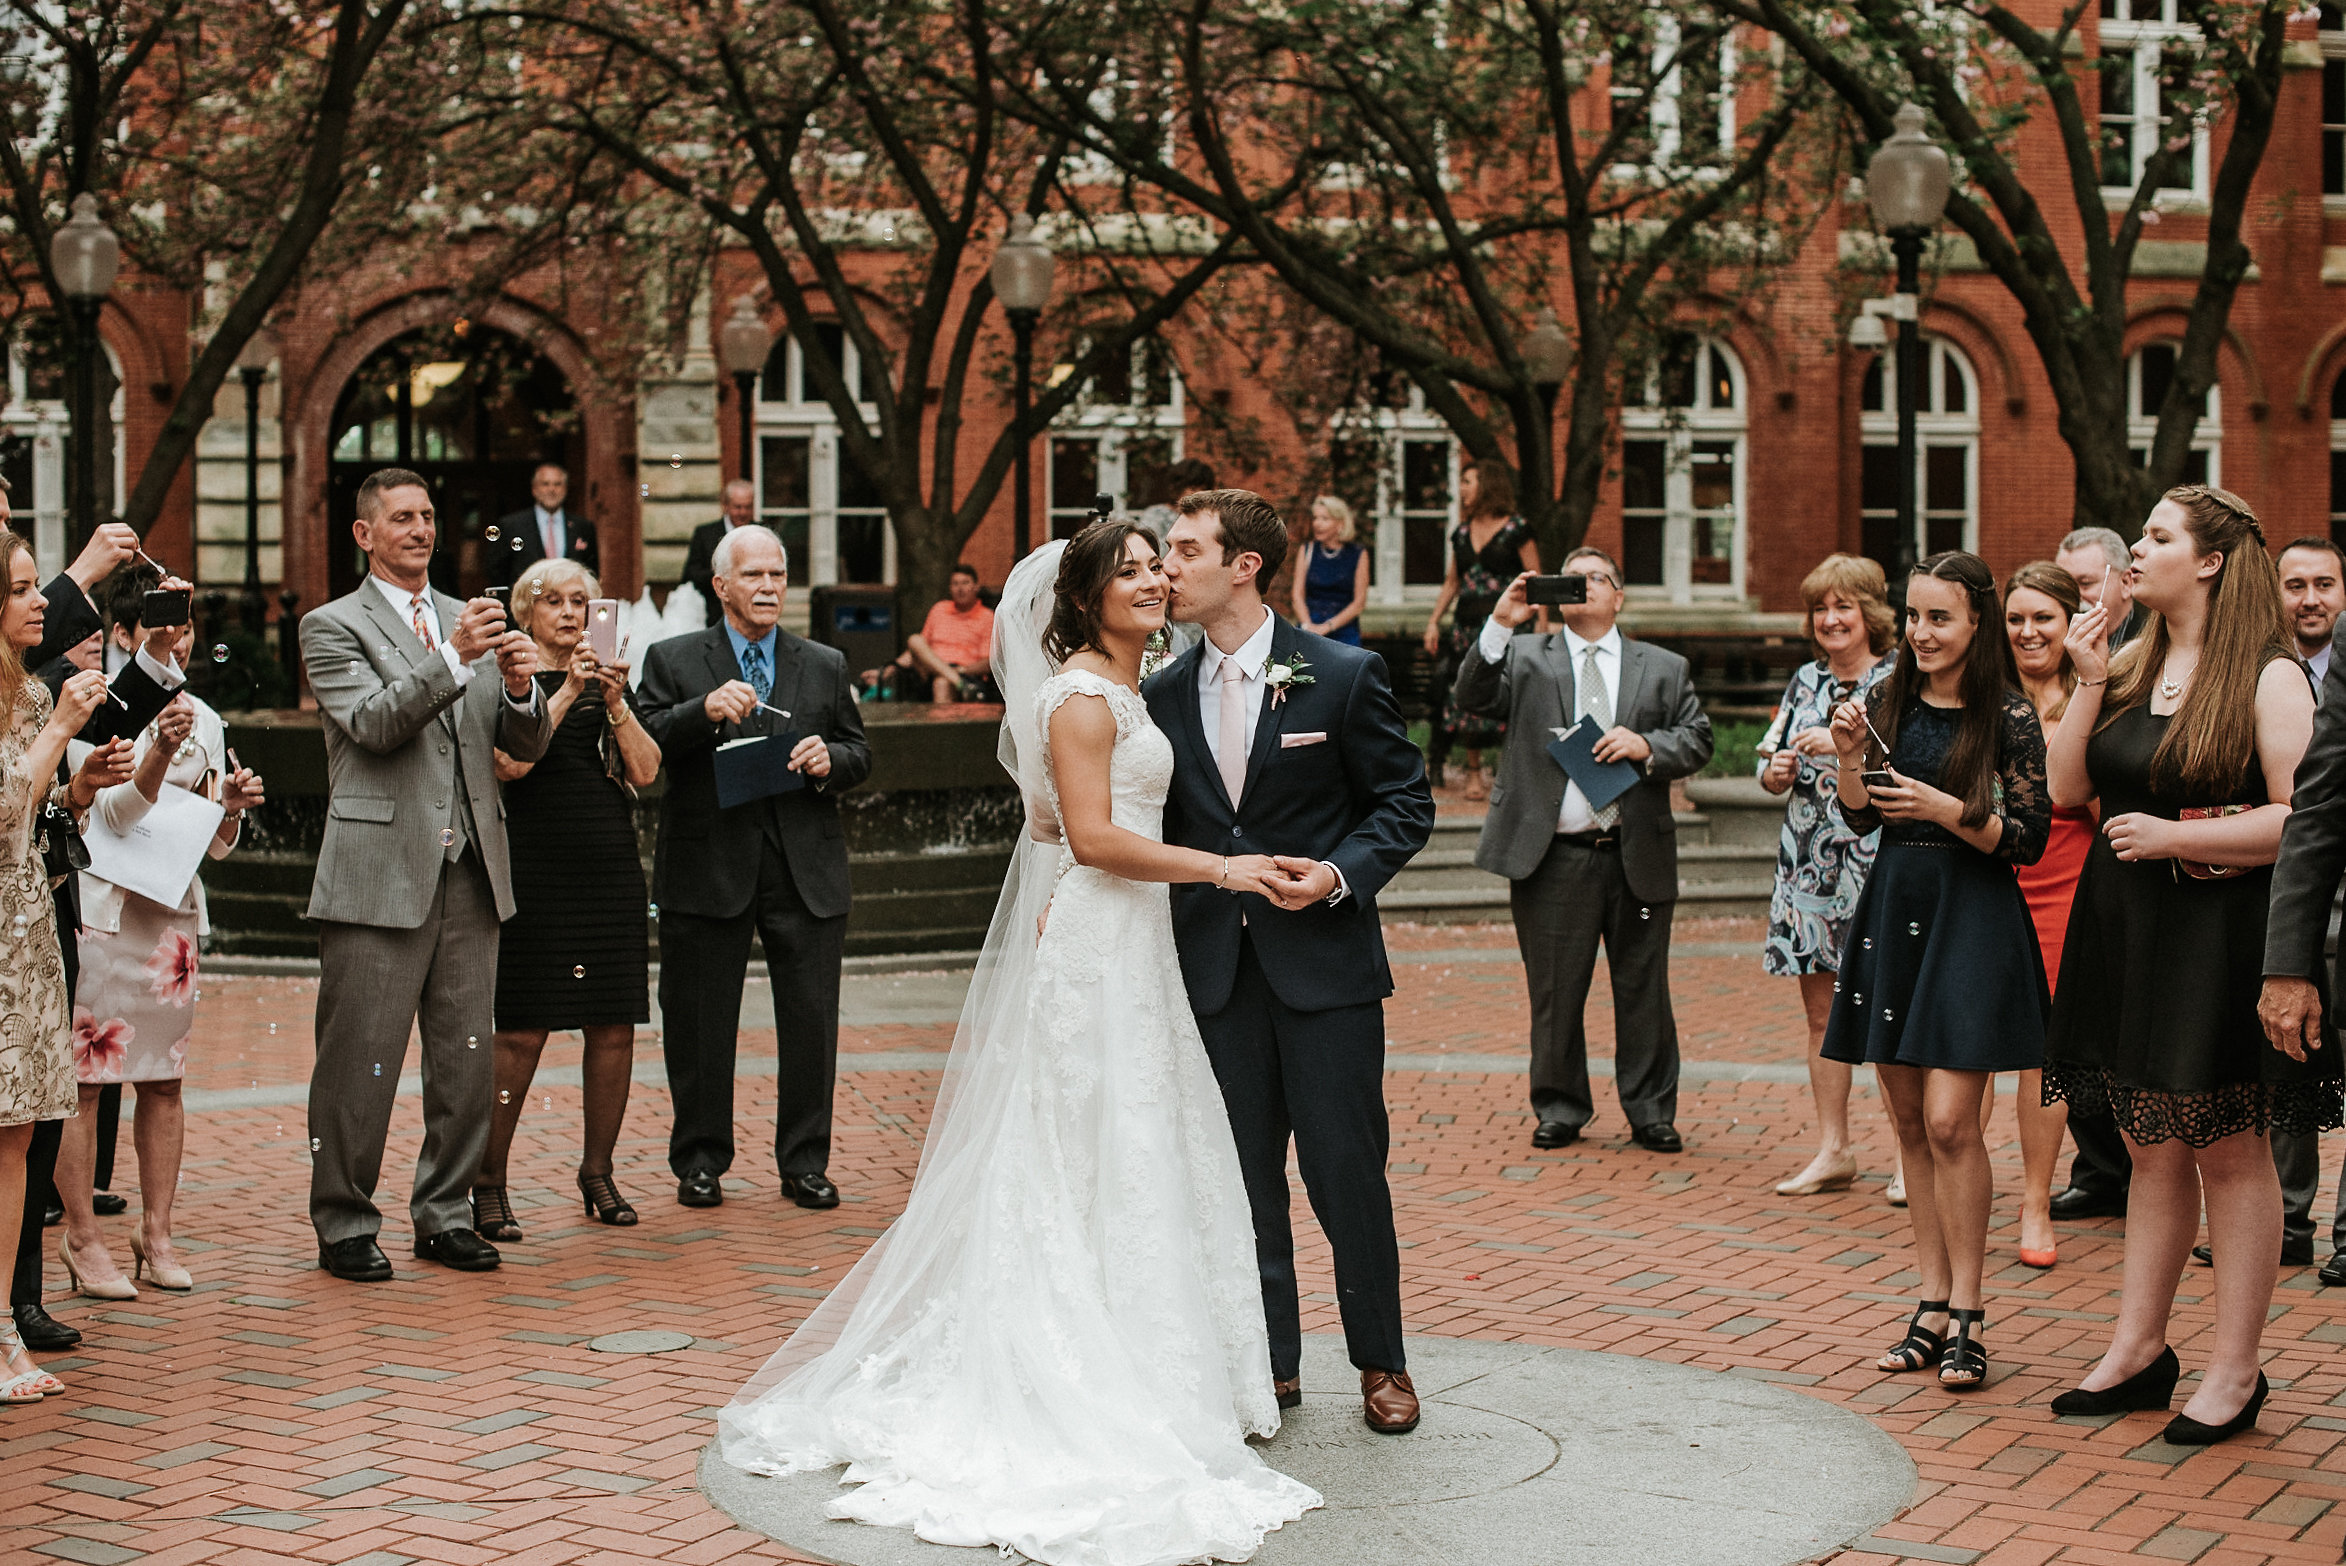 Bride and groom in church courtyard